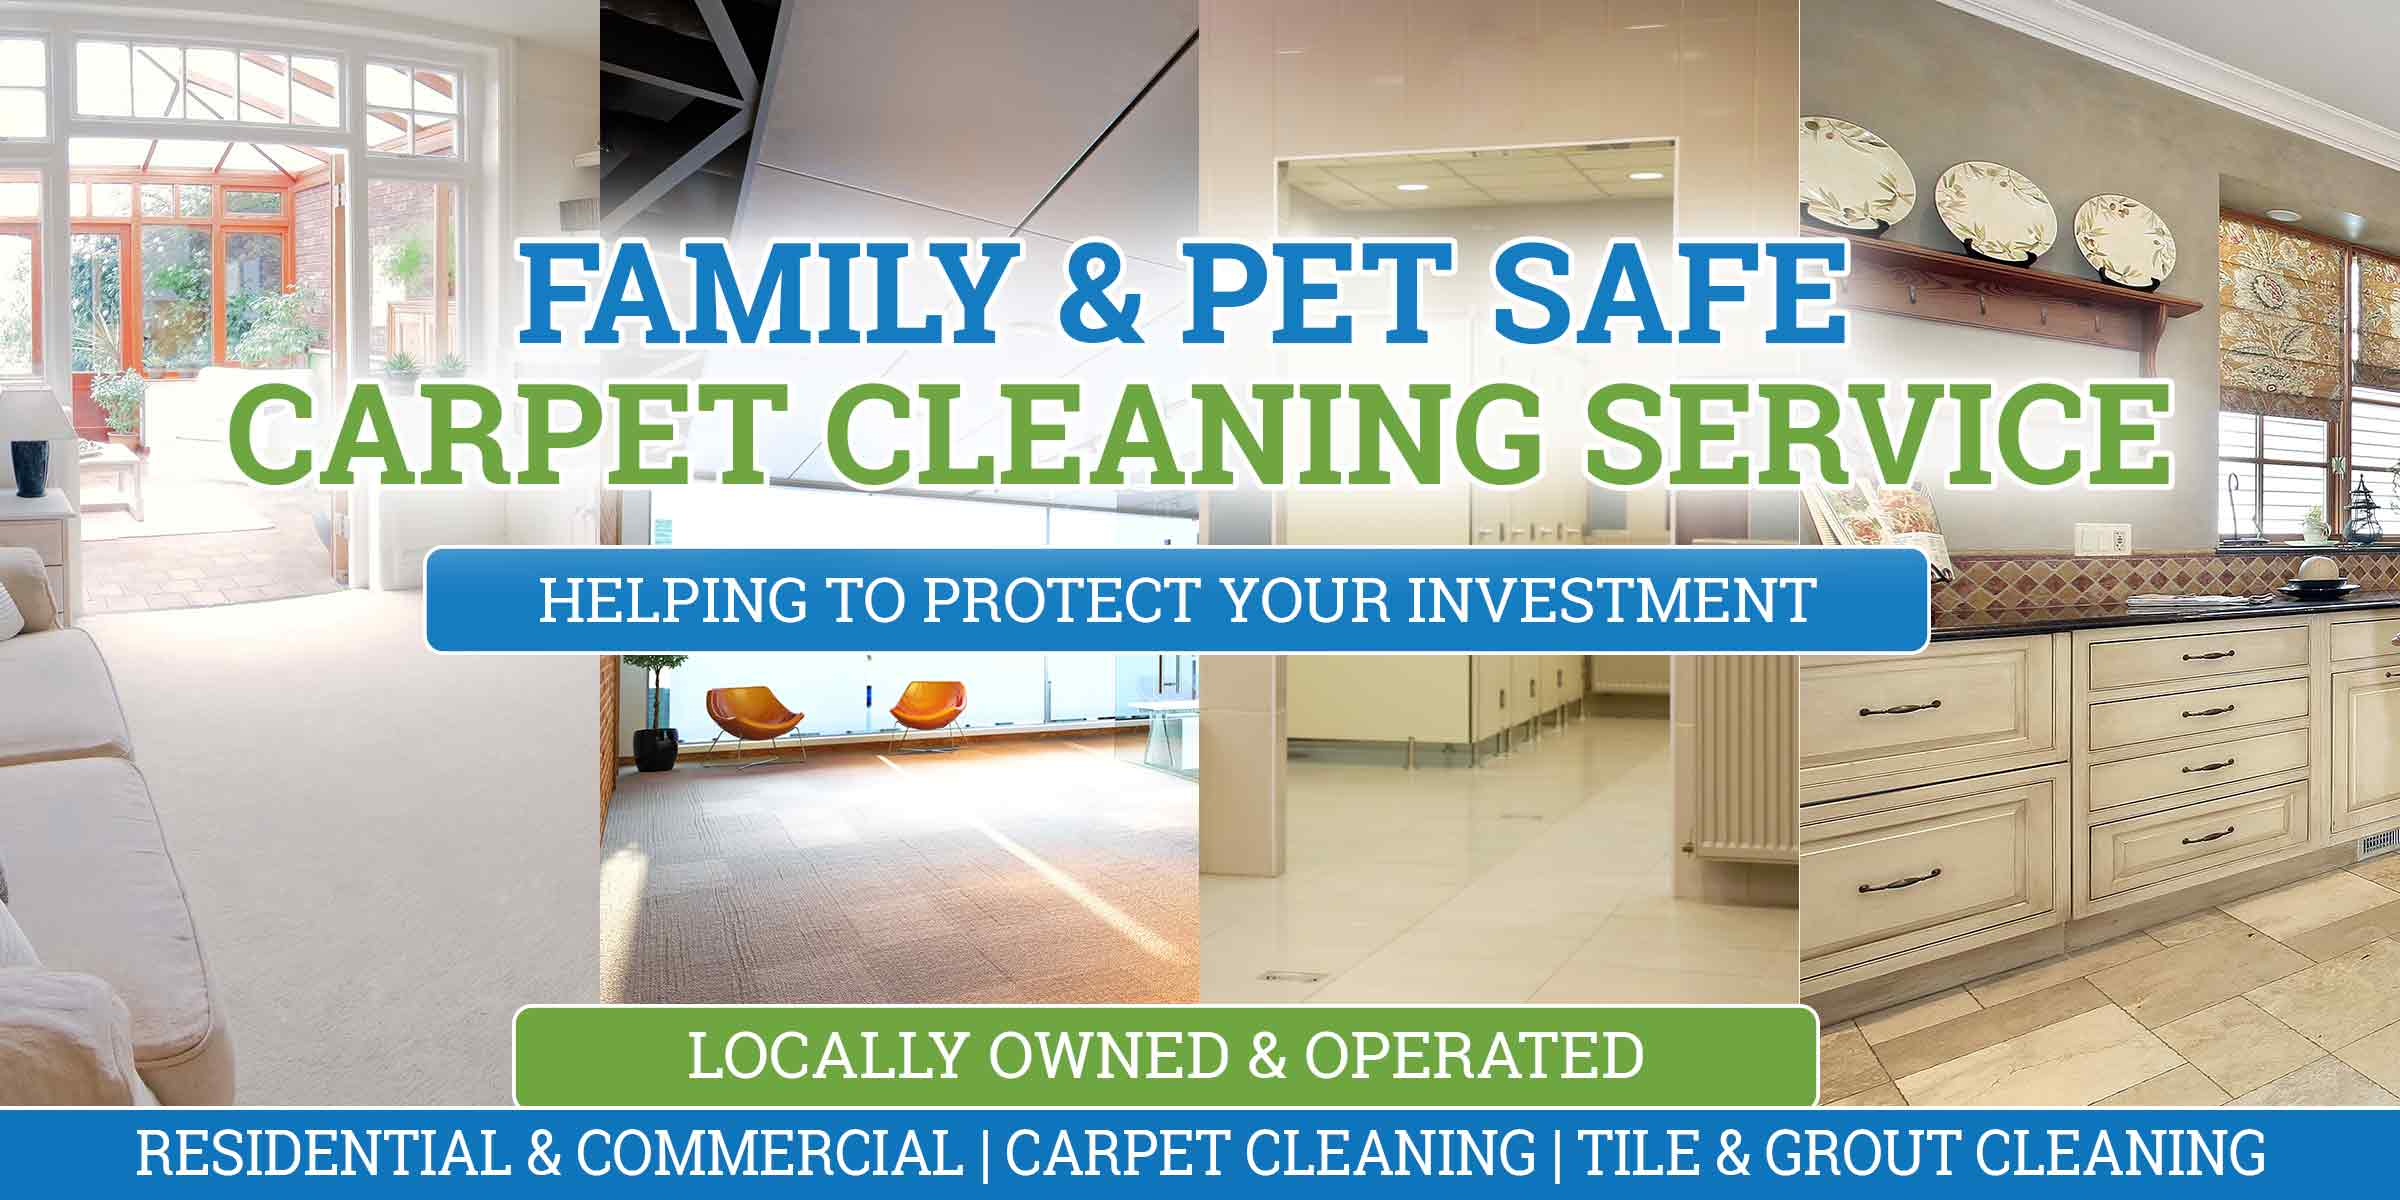 family and pet safe carpet cleaning service